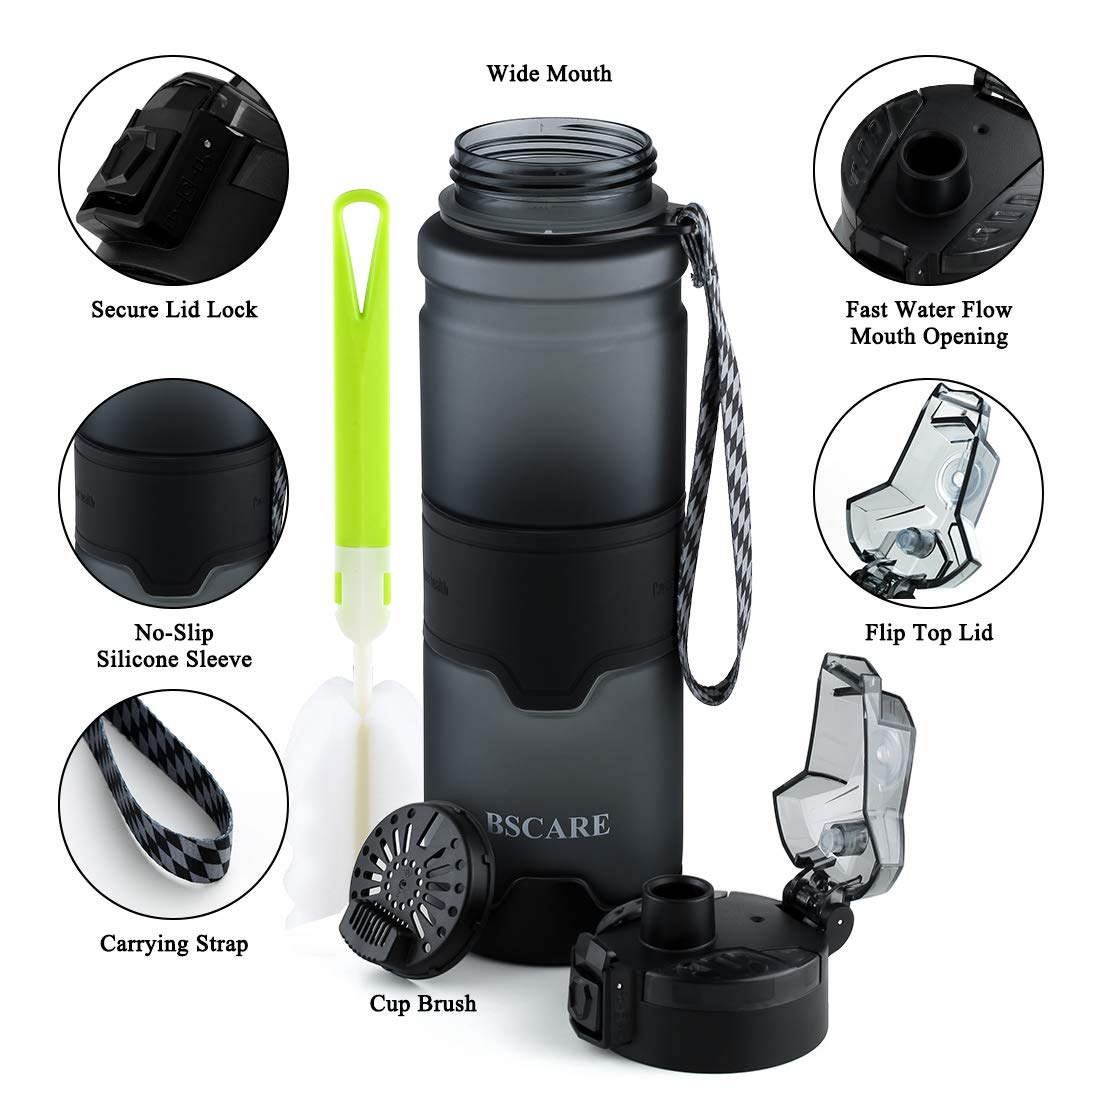 36 Oz Large BPA Free Water Bottle for Fitness Outdoor Enthusiasts Pop Open Lid BSCare Sports Water Bottle Leakproof /& Durable Eco-Friendly Tritan Drink Bottle with Filter